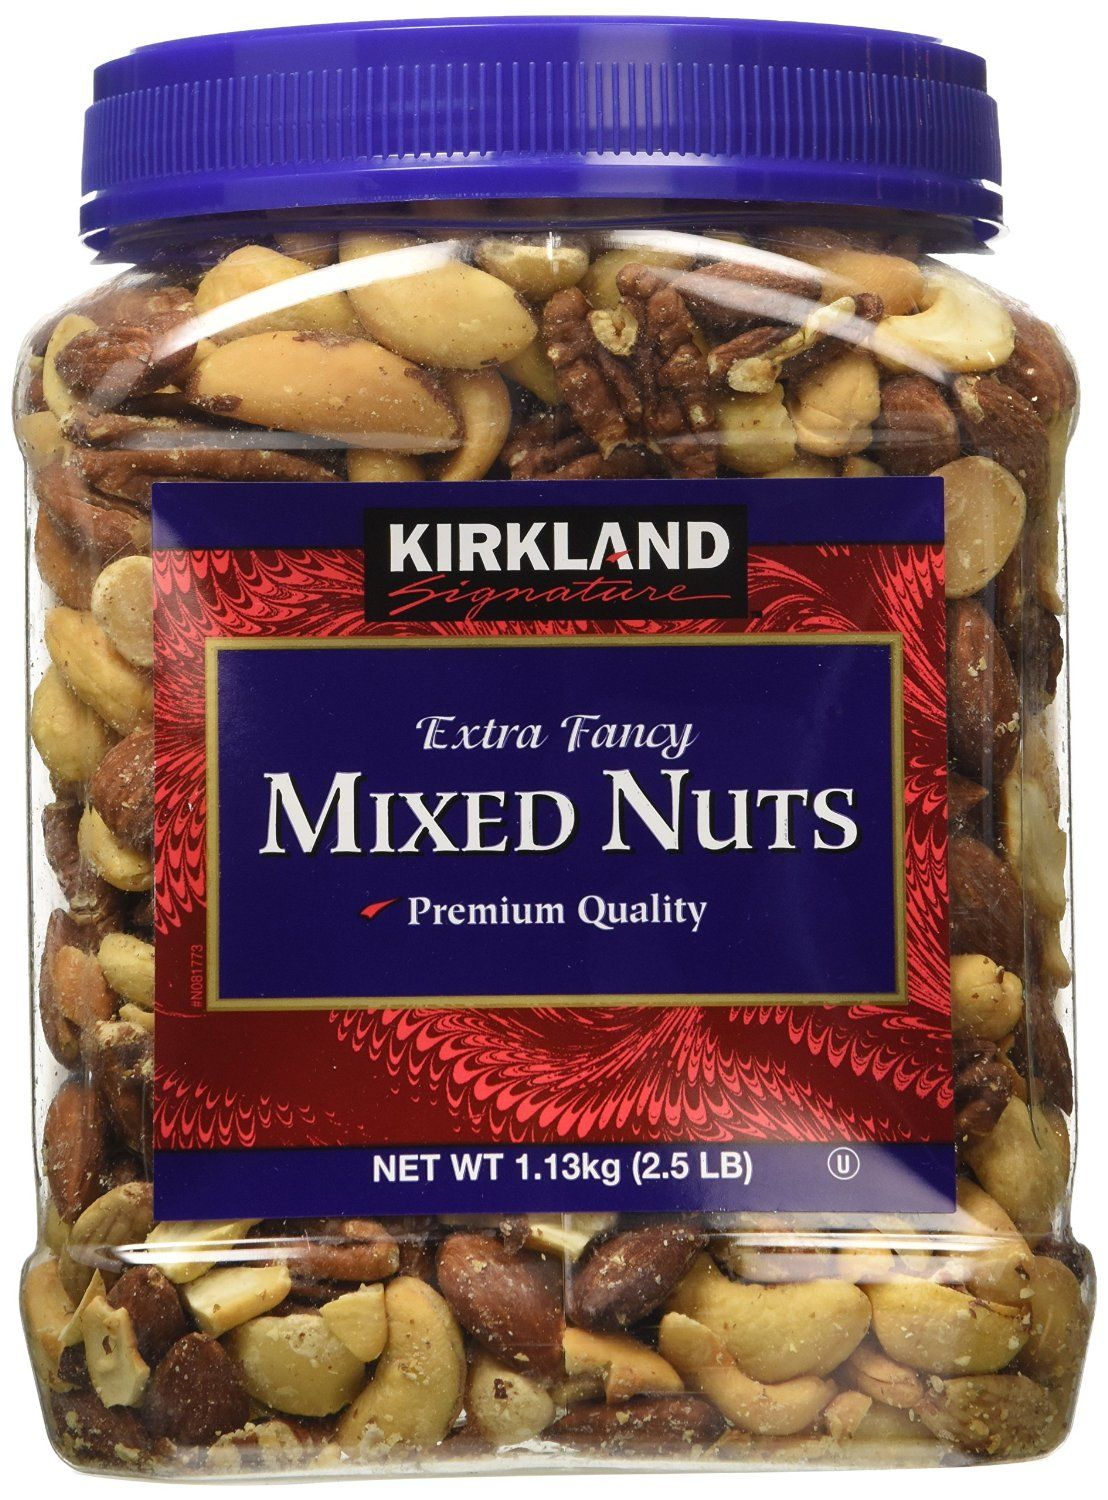 Signature's Kirkland Fancy Mixed Nuts, 40 Ounce Read